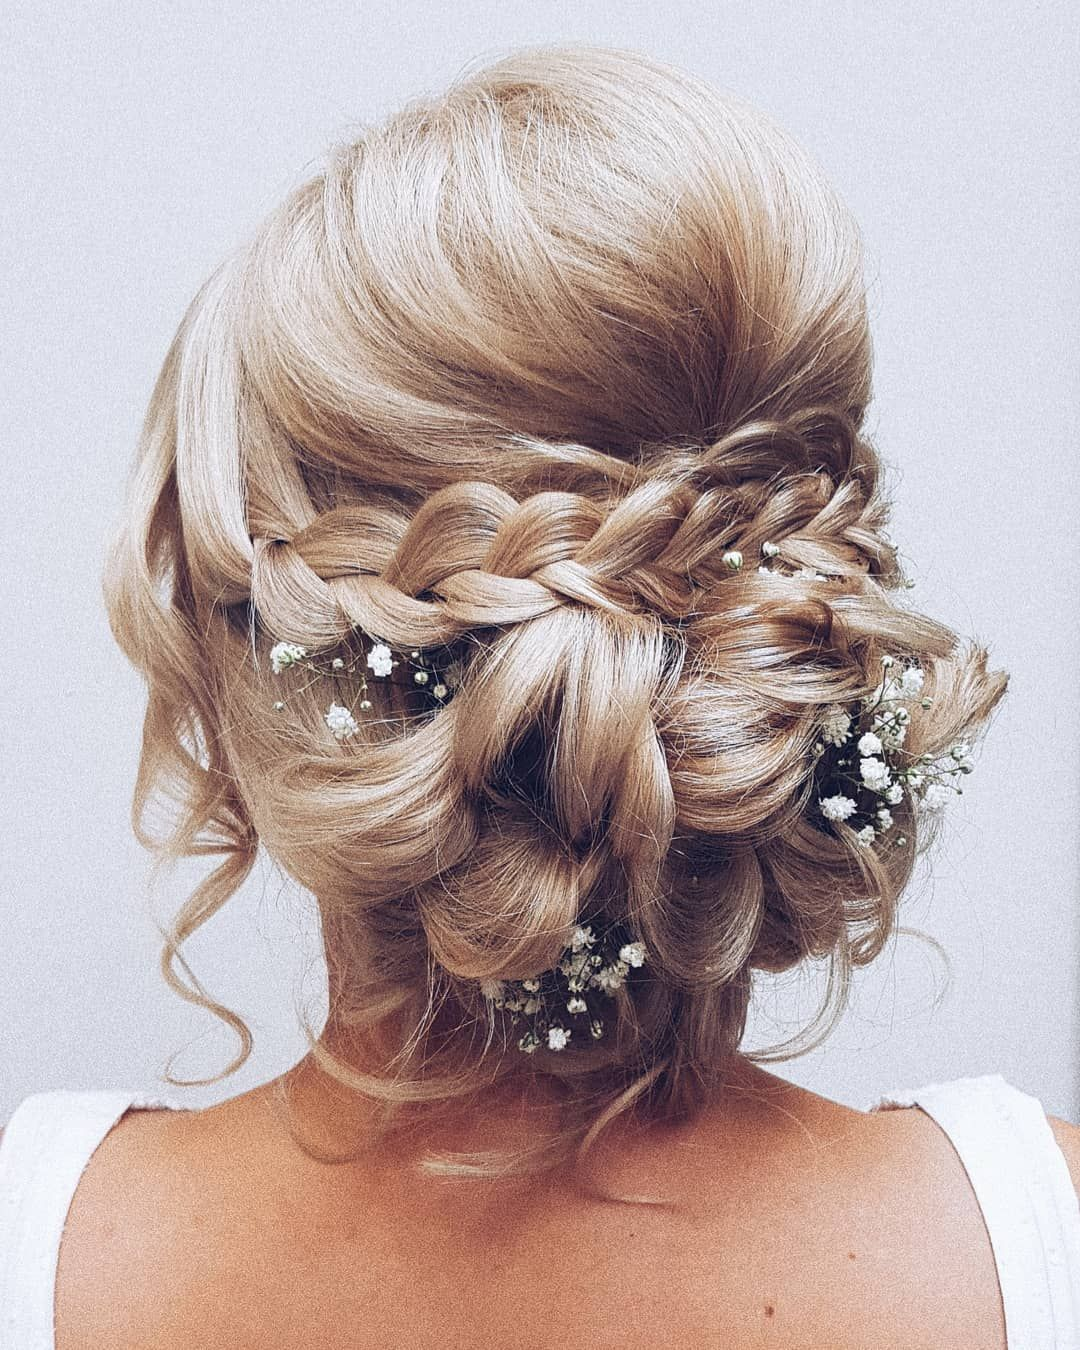 updo hairstyles for prom, wedding or etc. 2019 - page 45 of